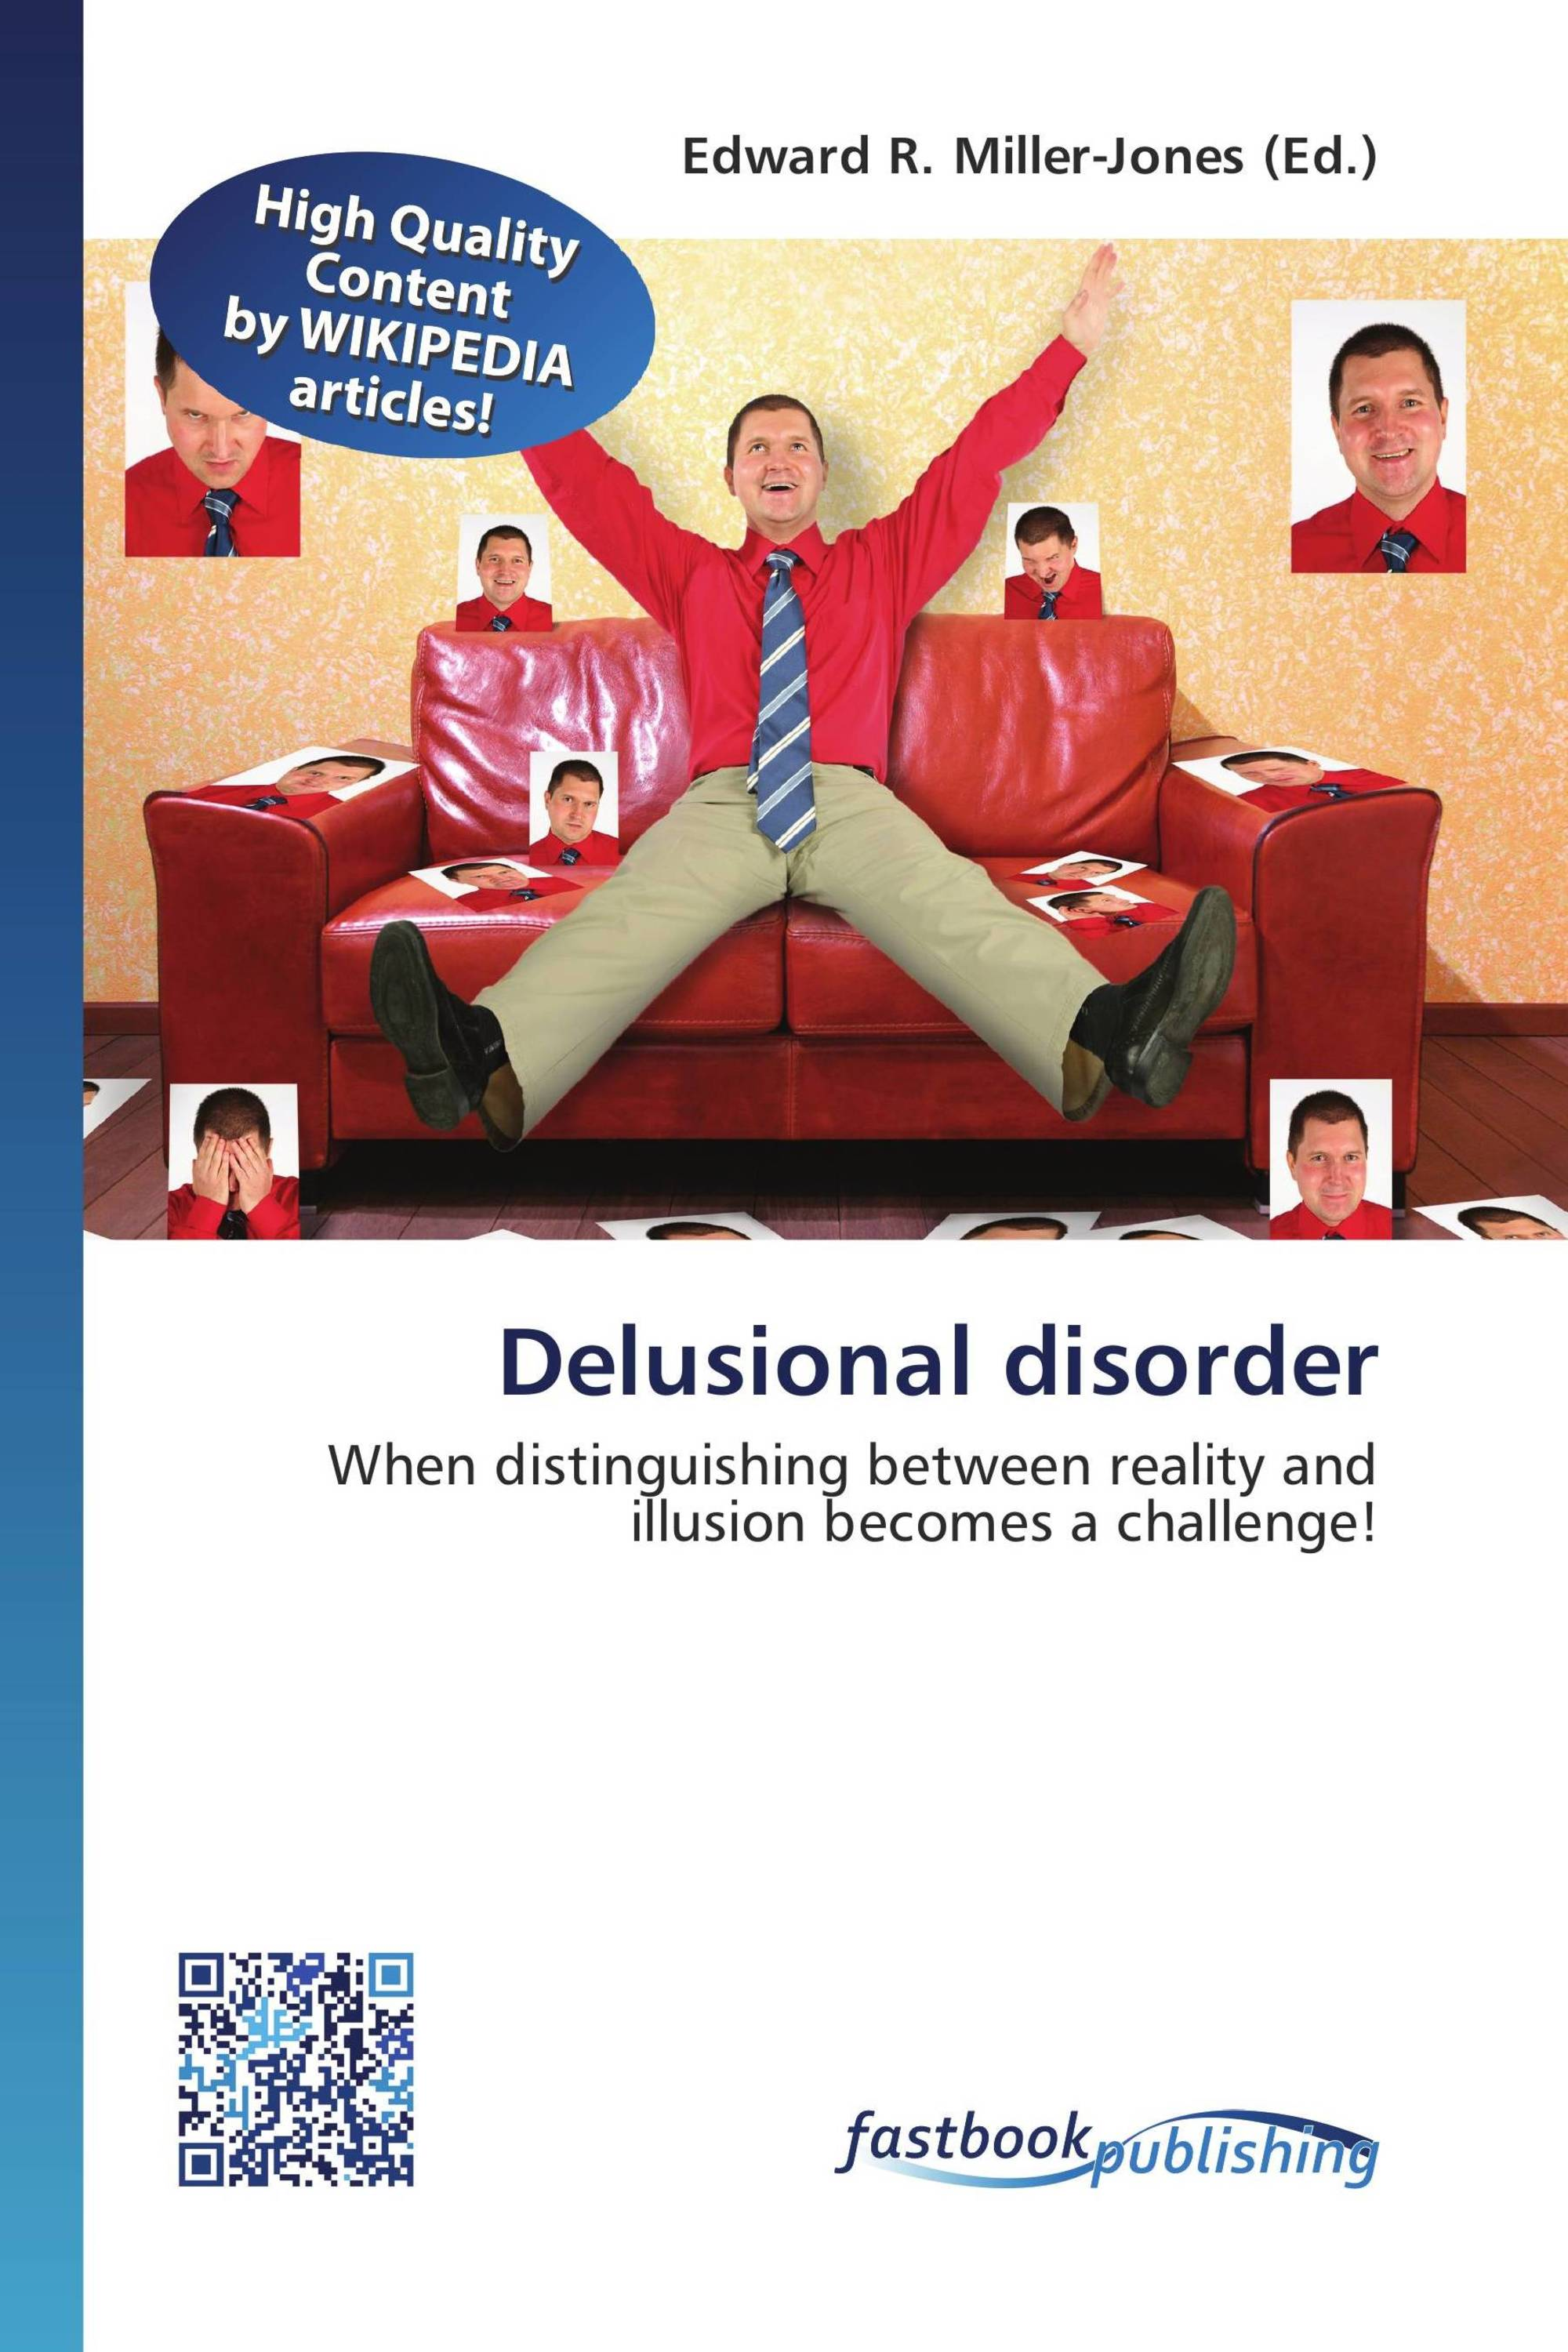 delusional disorder Full description of delusional disorder definition, signs, symptoms, causes of delusional disorder.